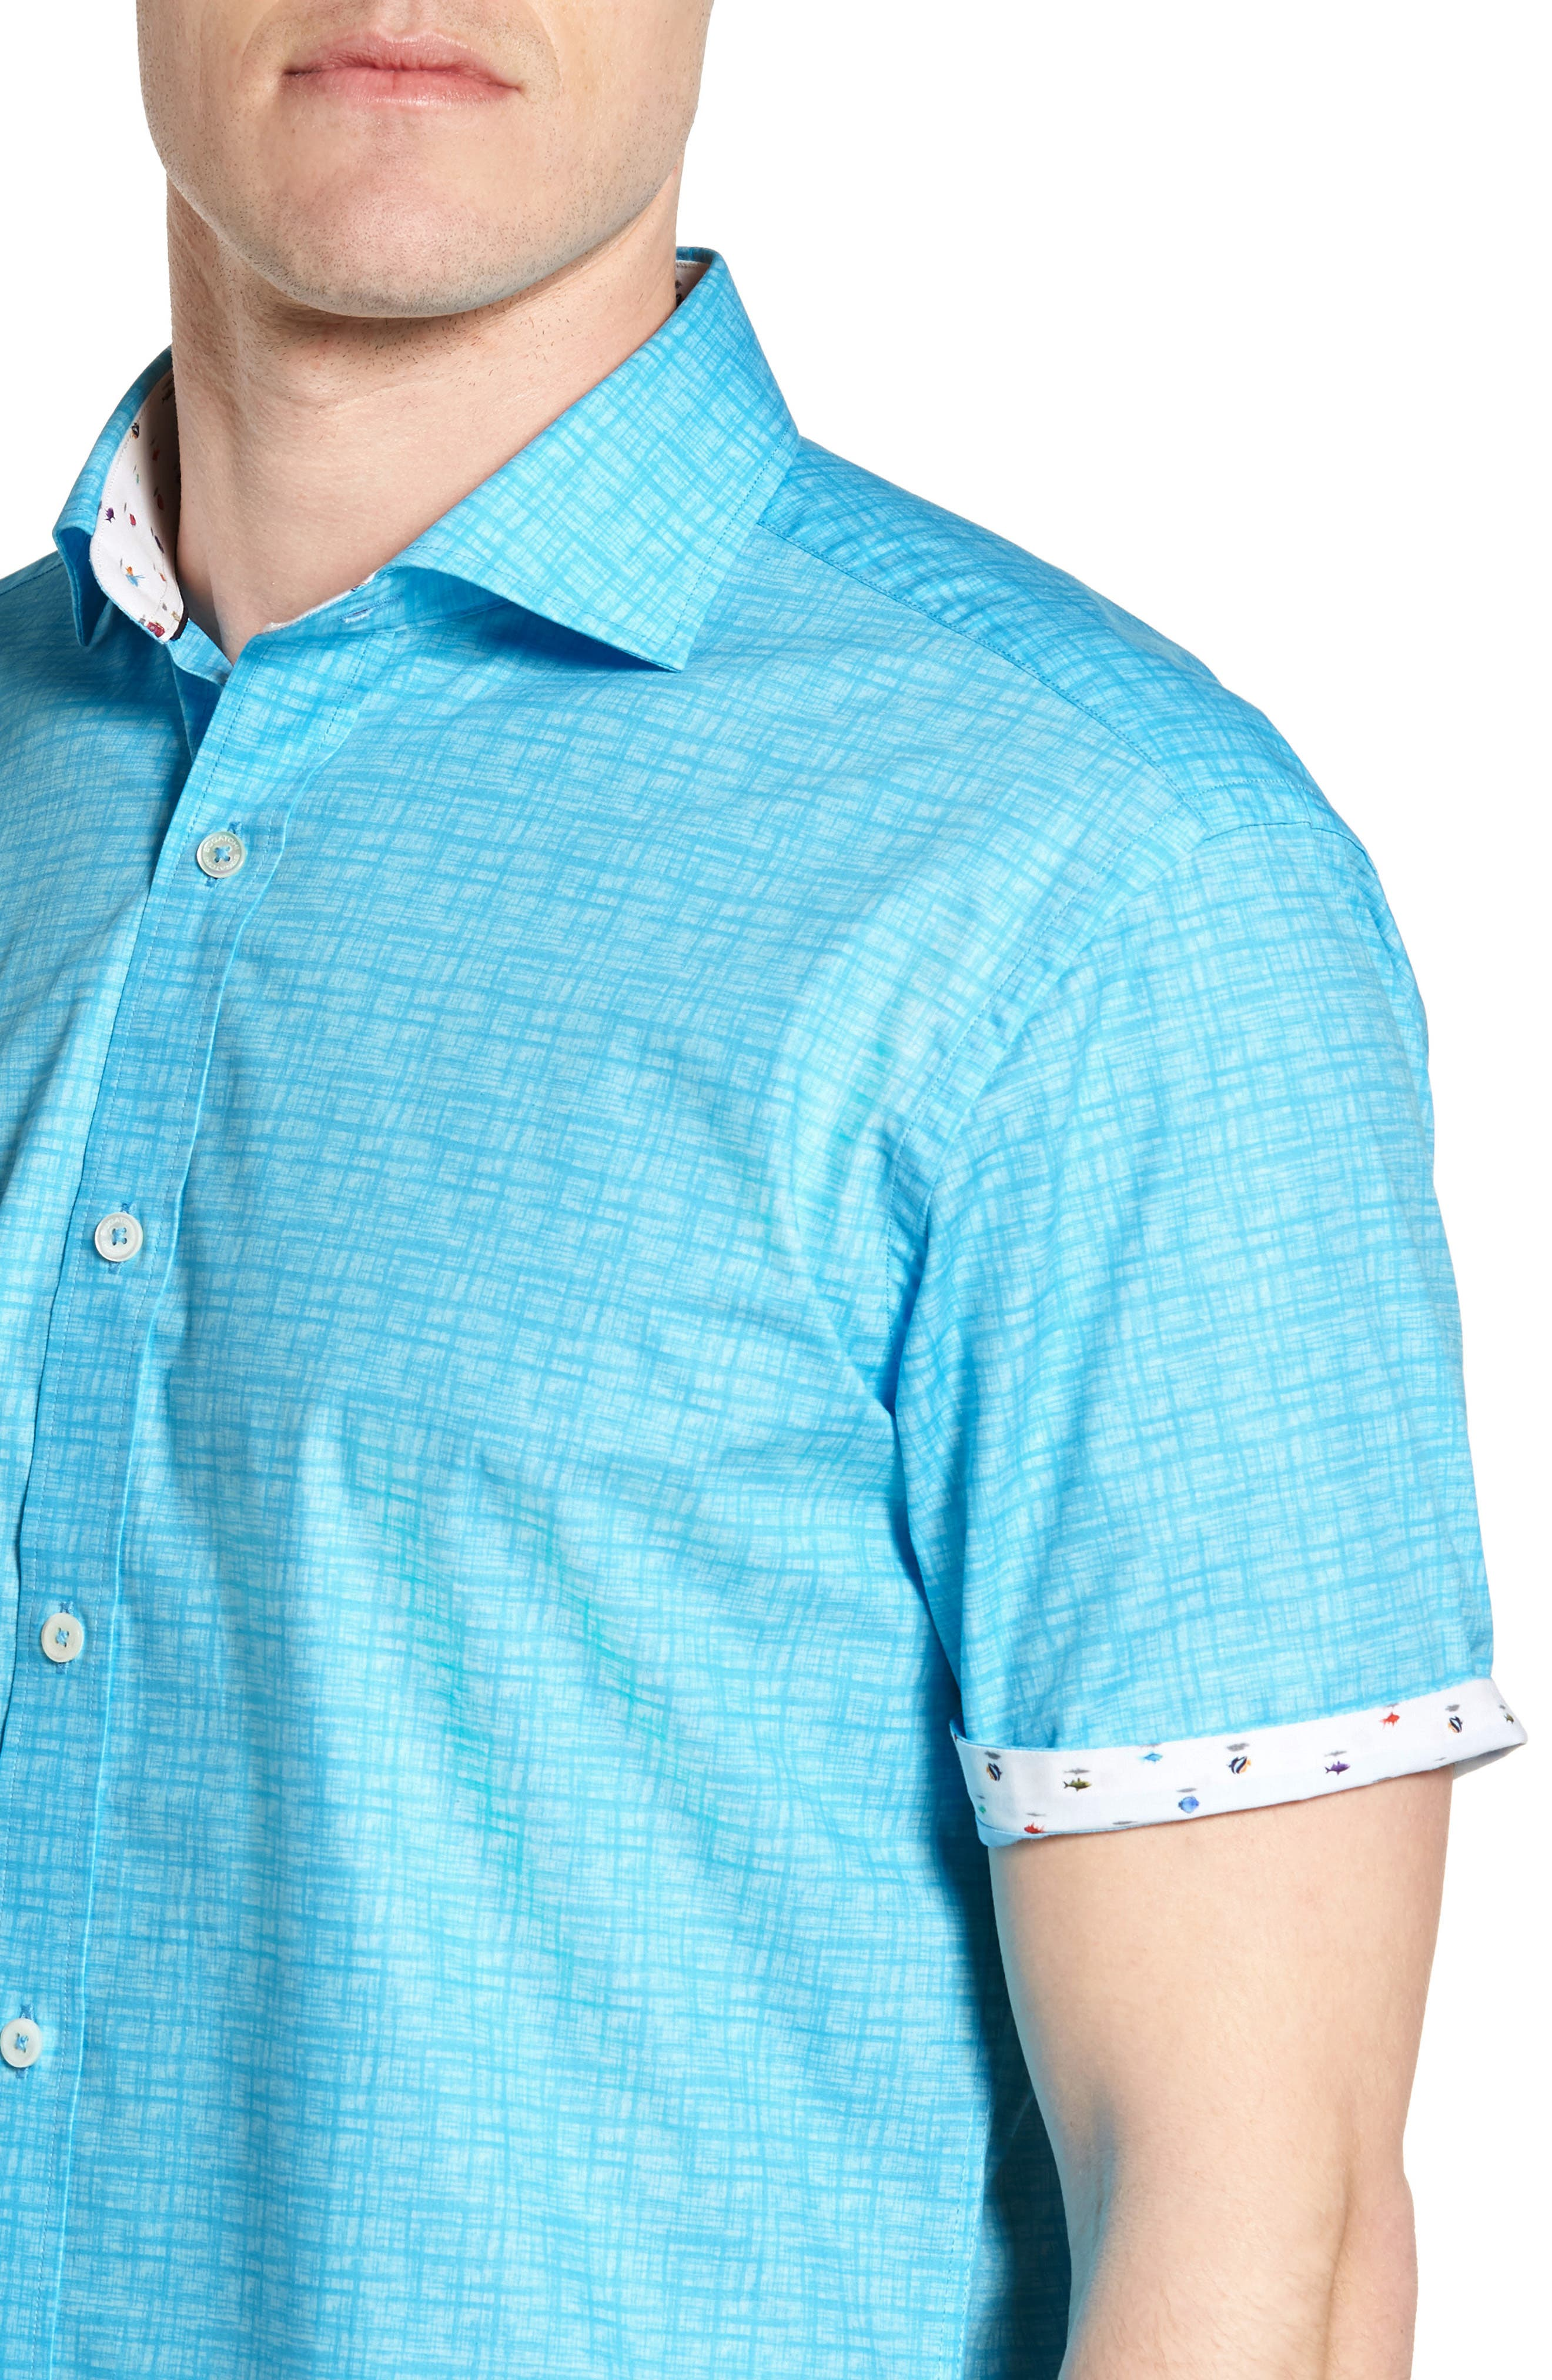 Freehand Shaped Fit Sport Shirt,                             Alternate thumbnail 4, color,                             Aqua